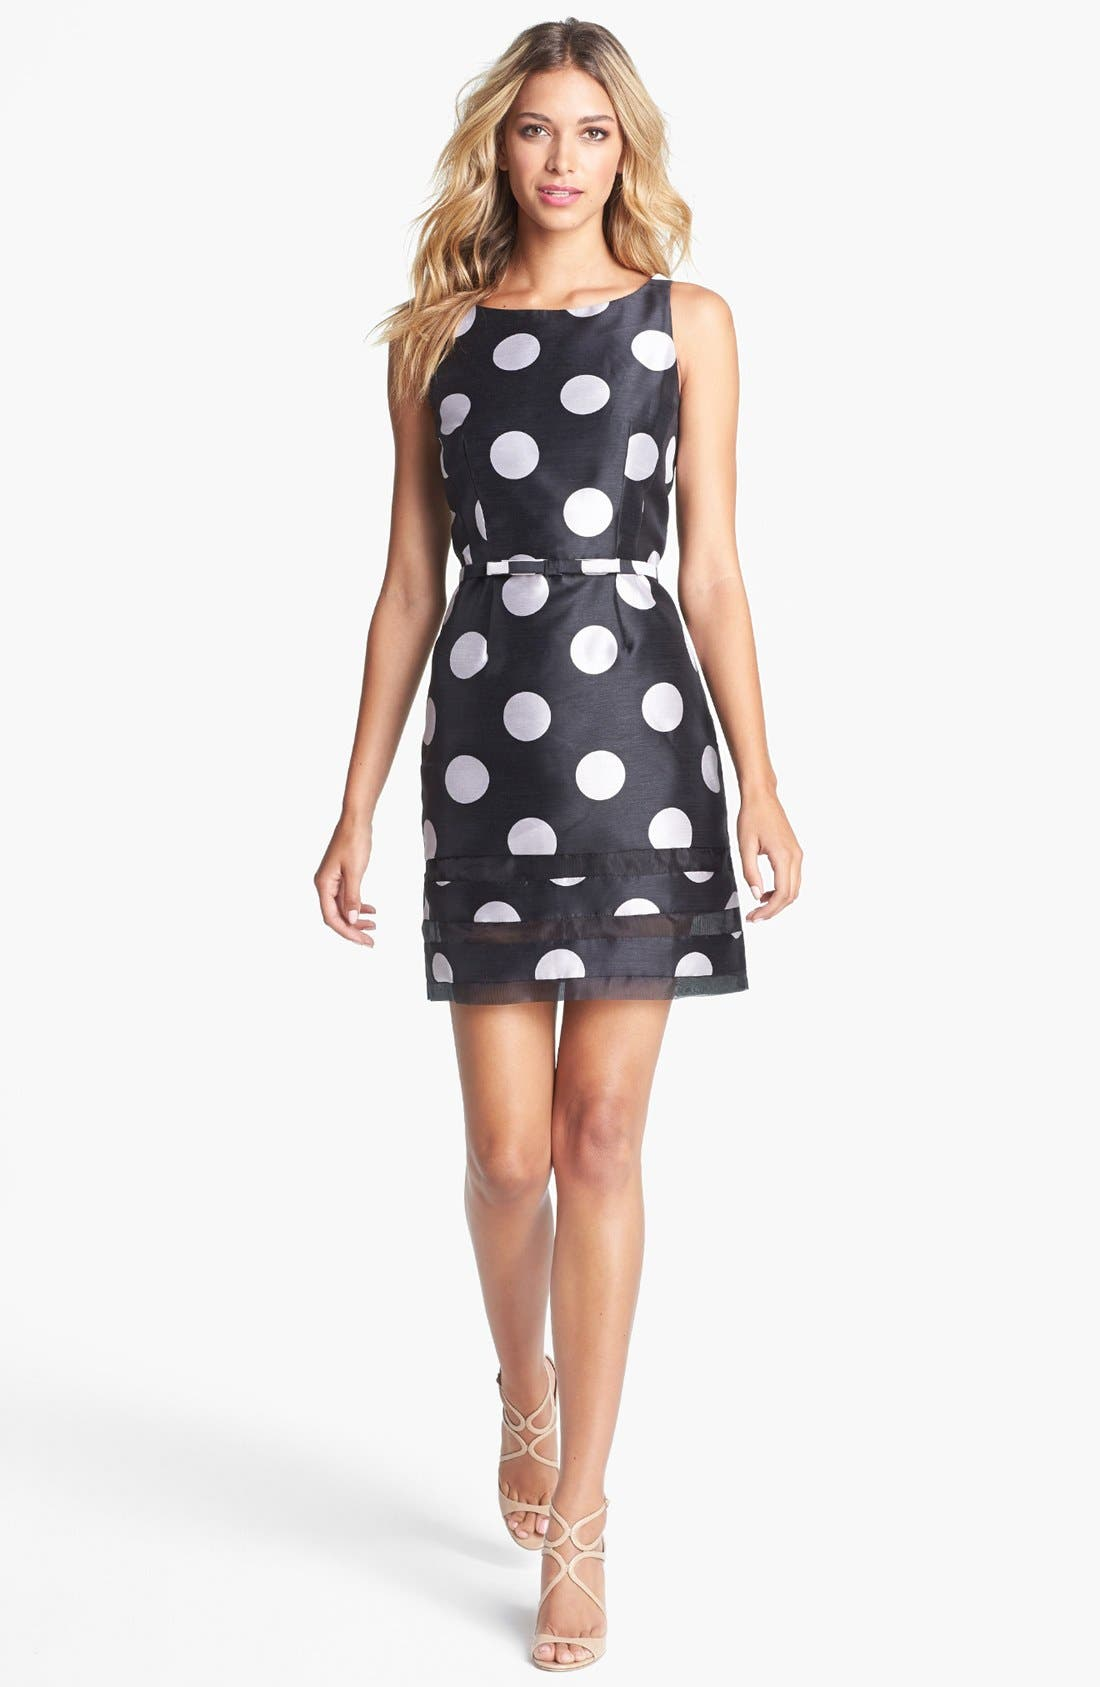 Alternate Image 1 Selected - Taylor Dresses Polka Dot Sheath Dress